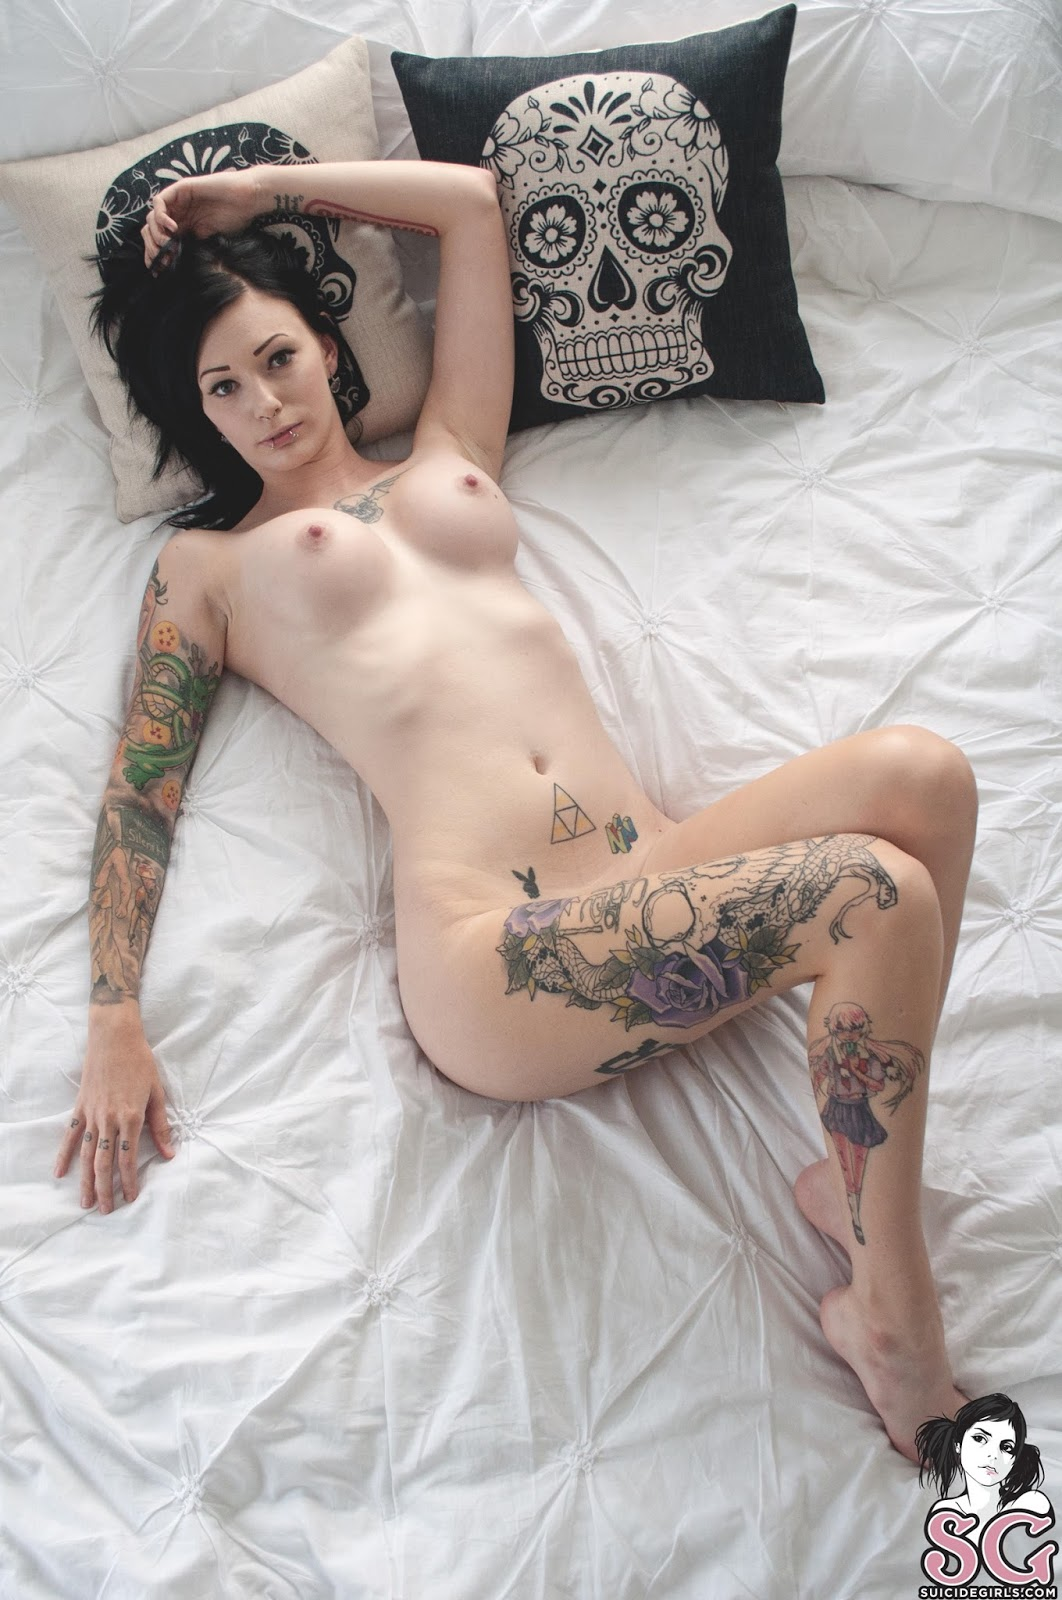 alternative-babe-nude-unshaven-middle-eastern-girls-nude-tumblr